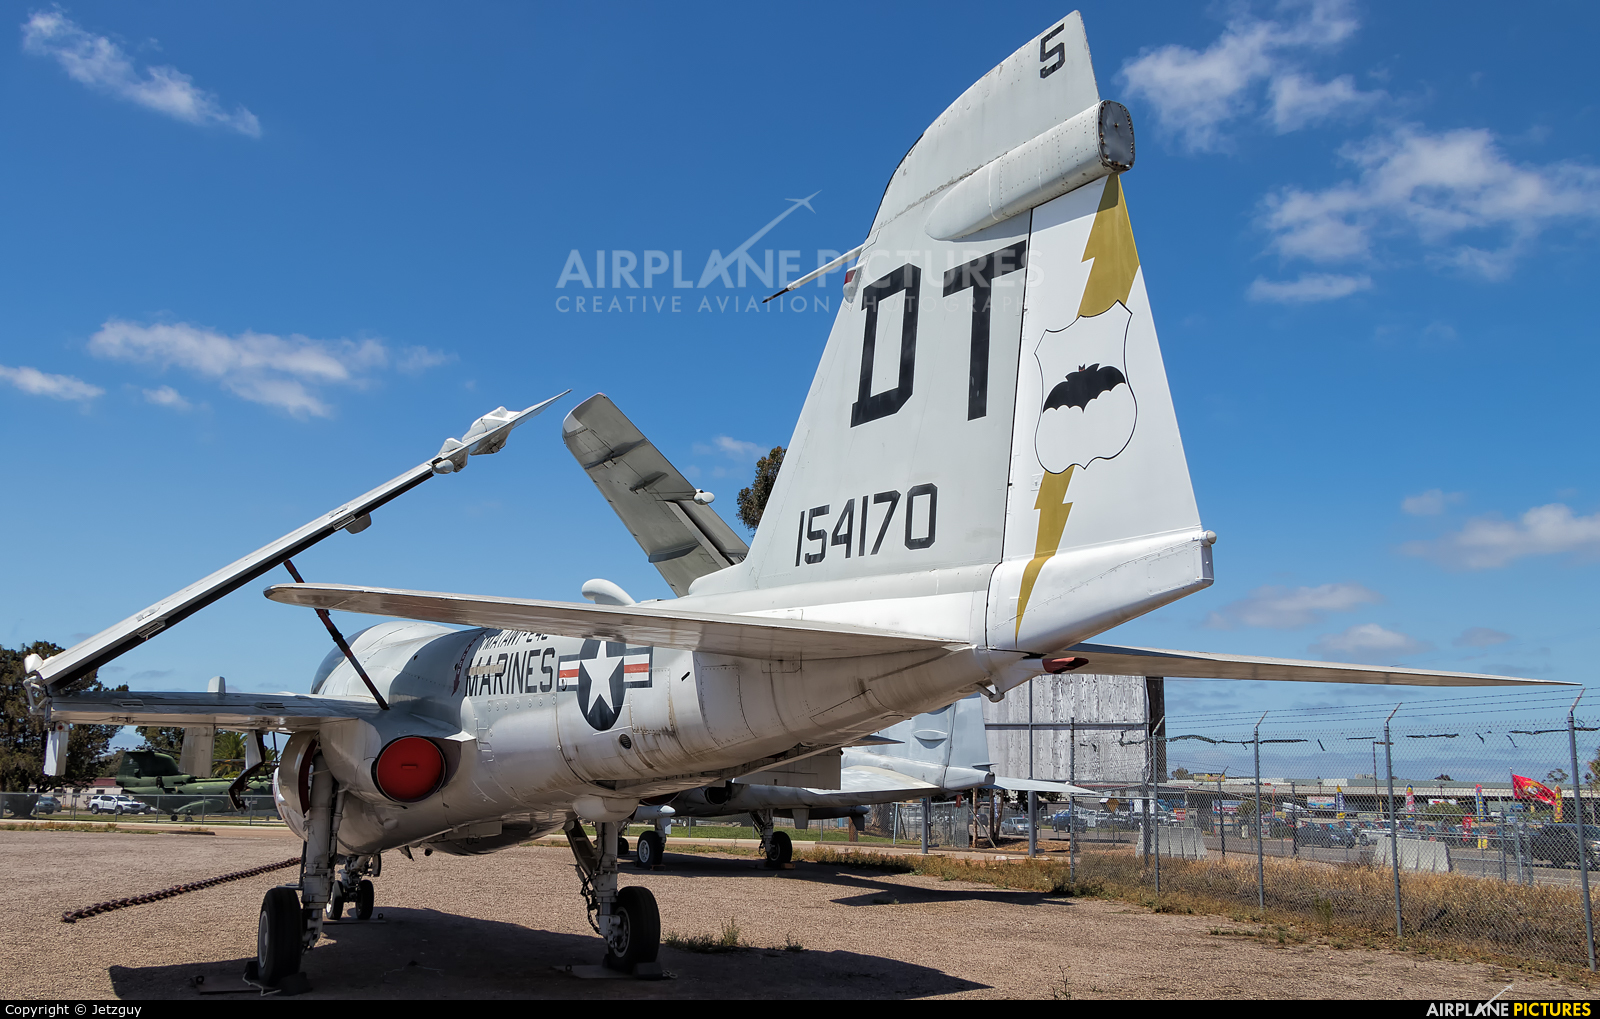 USA - Marine Corps 154170 aircraft at Miramar MCAS - Flying Leatherneck Aviation Museum